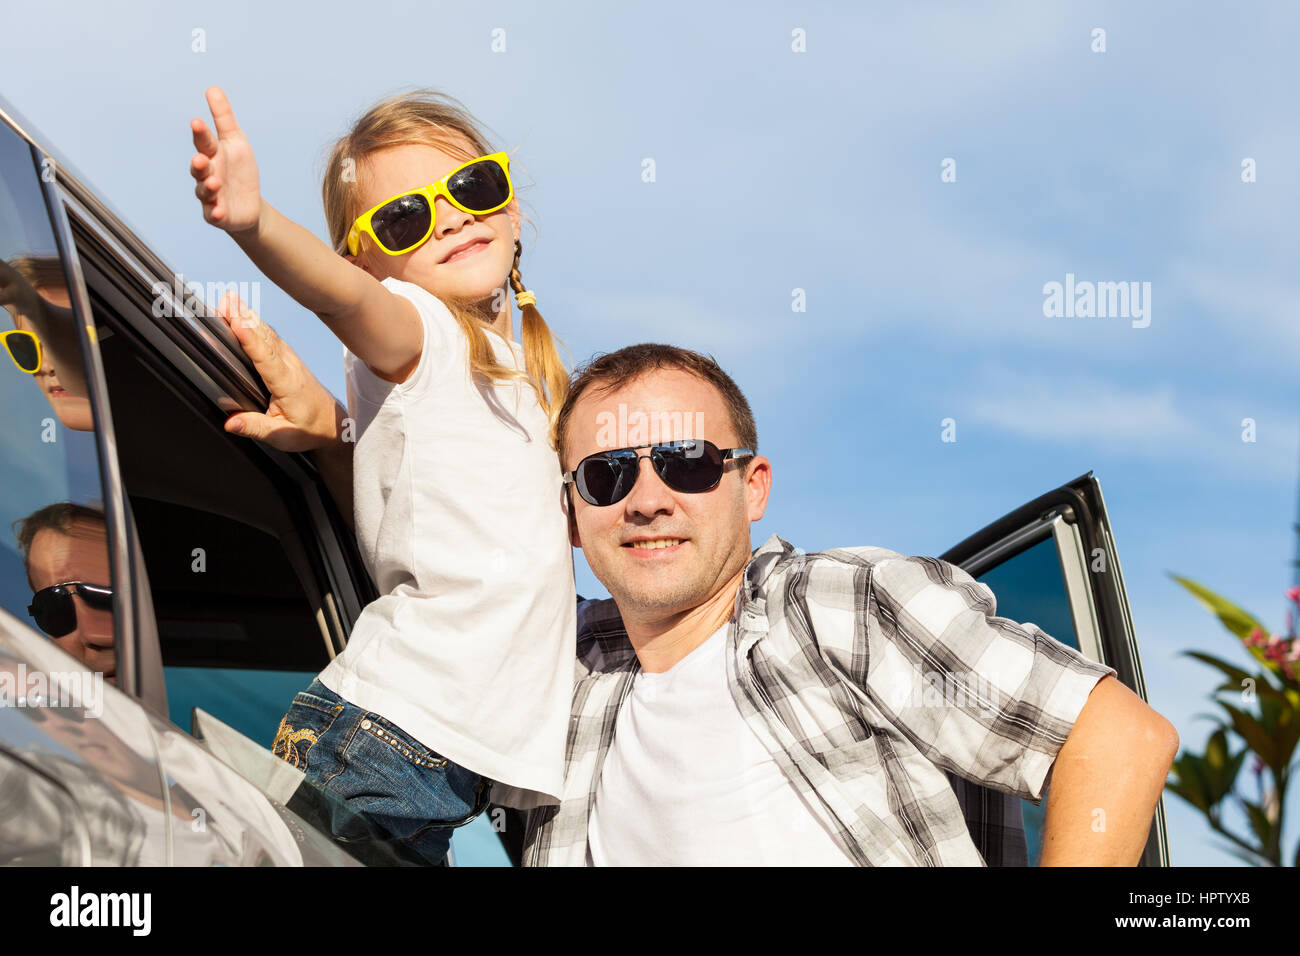 Happy father and daughter getting ready for road trip on a sunny day.  Concept of friendly family. - Stock Image